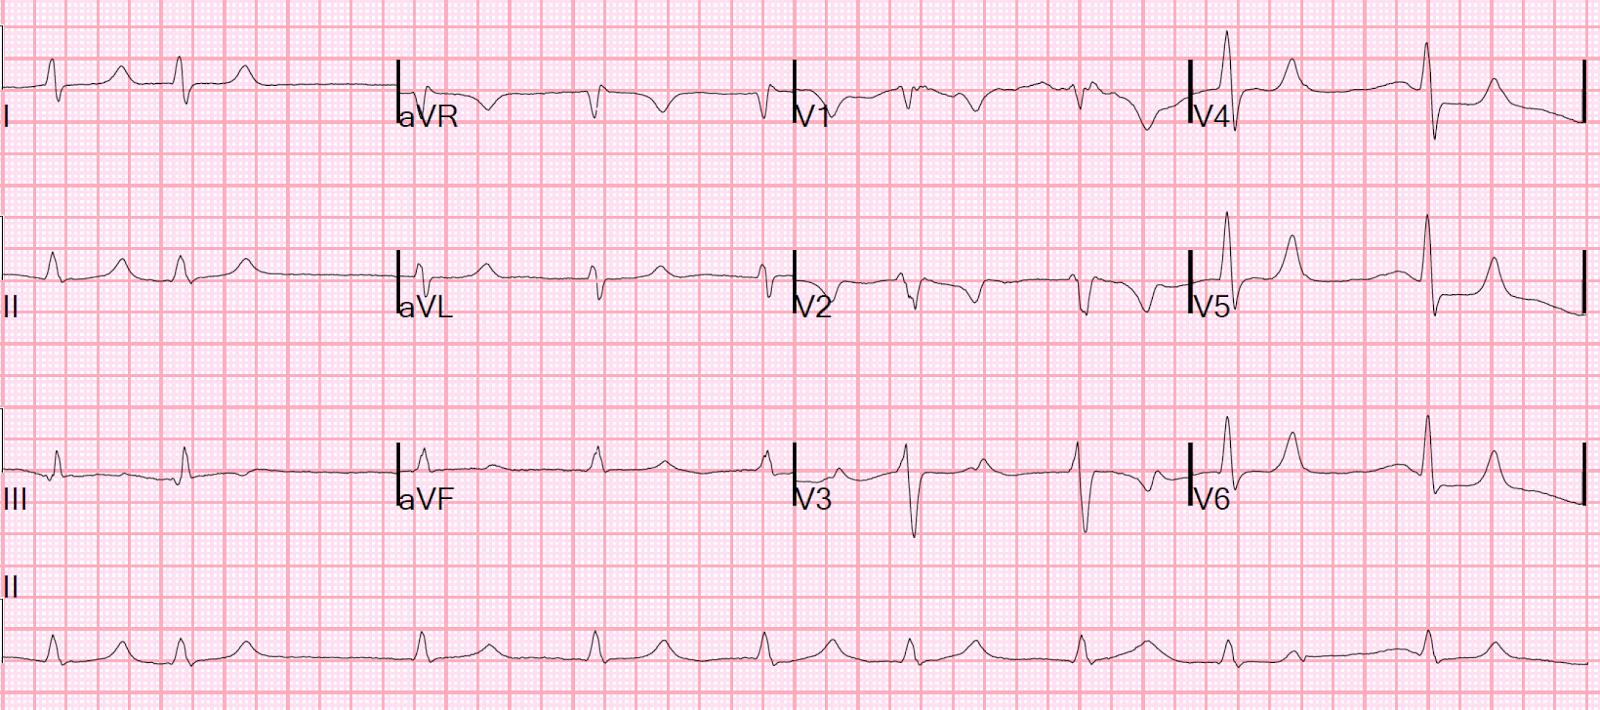 Dr Smith's Ecg Blog October 2015. Marketing Professional Services Firms. Elite Matchmaking Los Angeles. Washington Nursing Schools Form A Corporation. Looking For App Developer Toyota With Cummins. Cancer Treatment Florida Month To Month Cable. Water Safety Instructor Course. Air Conditioning Service Cape Coral. Project Management Certification Denver